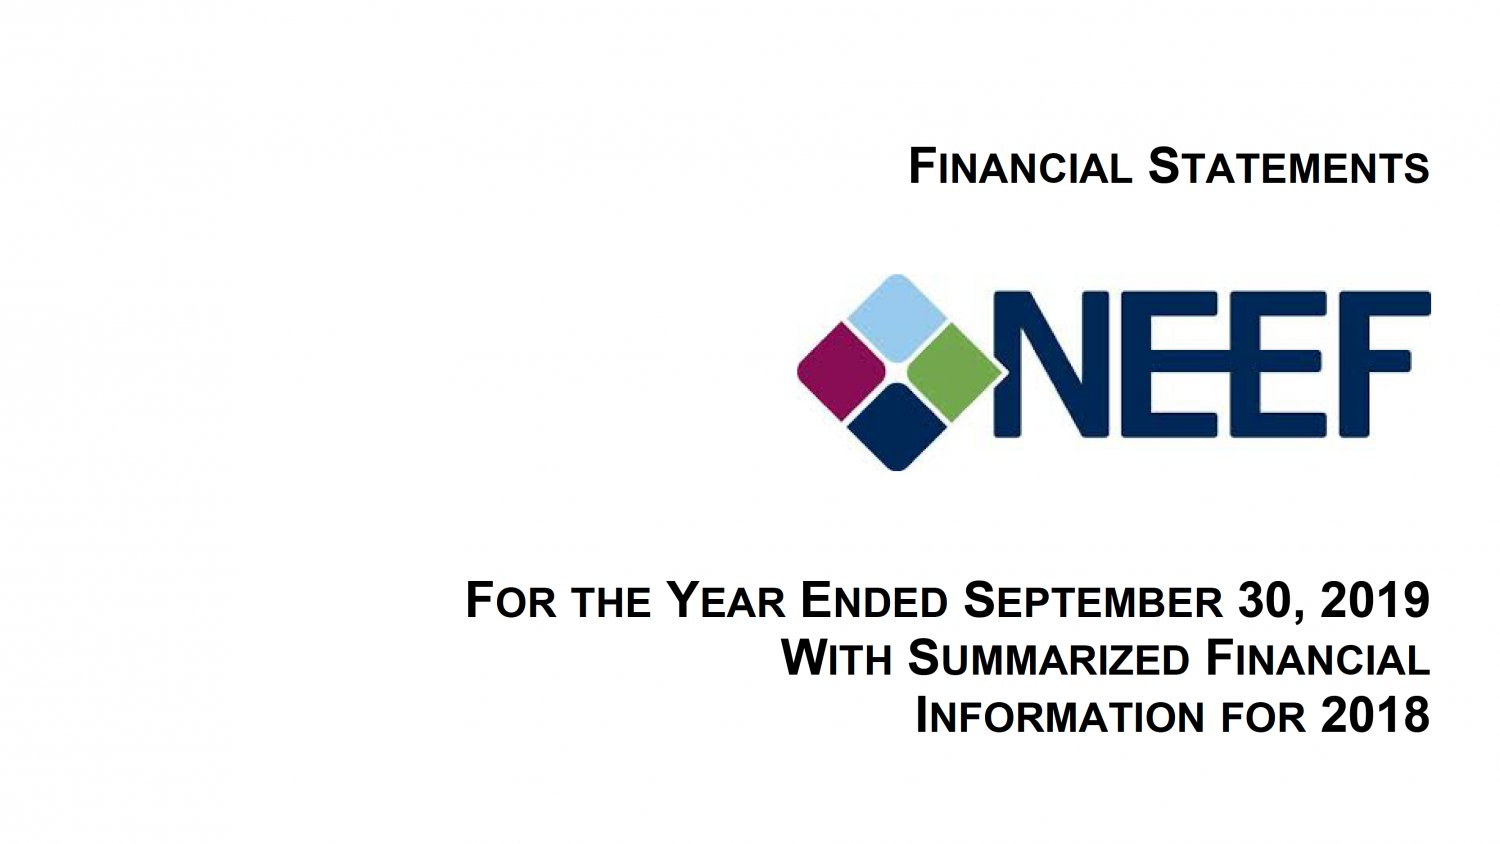 Financial Statements for the Year Ended September 30, 2019